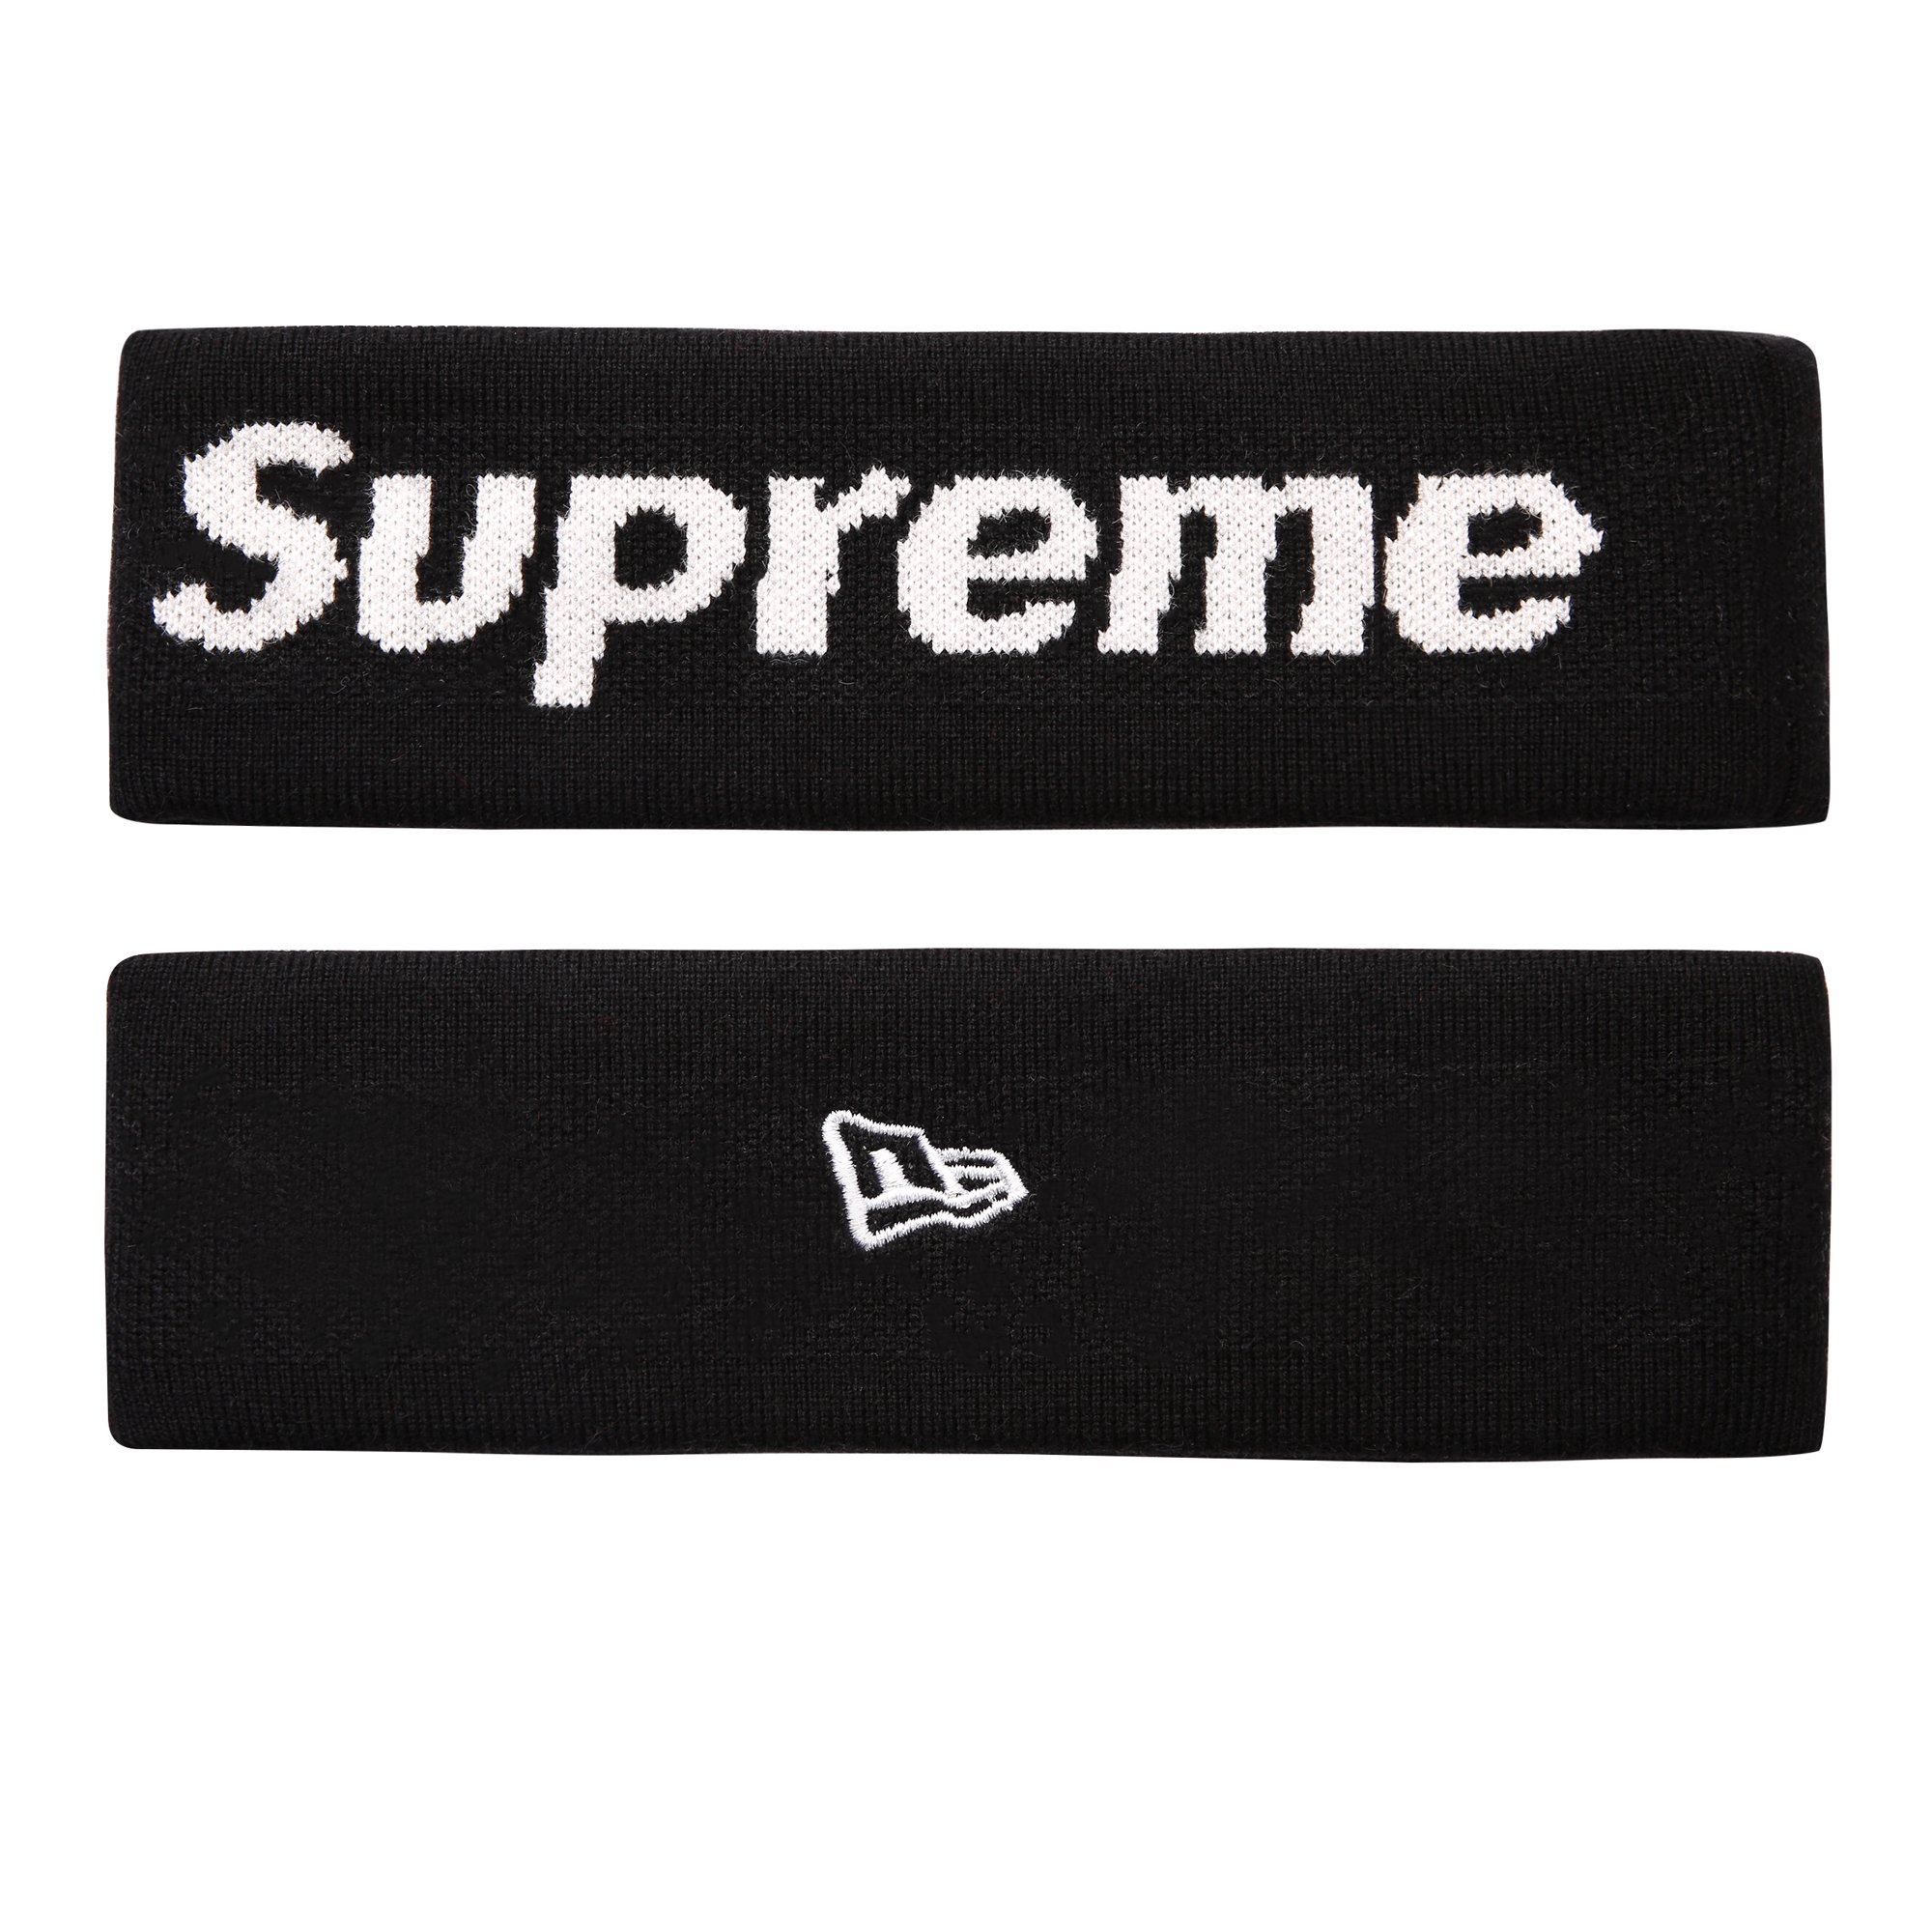 The Mass Sweatband Supreme Headband Perfect for Basketball, Running, Football, Tennis-Fits for Men and Women (Black)